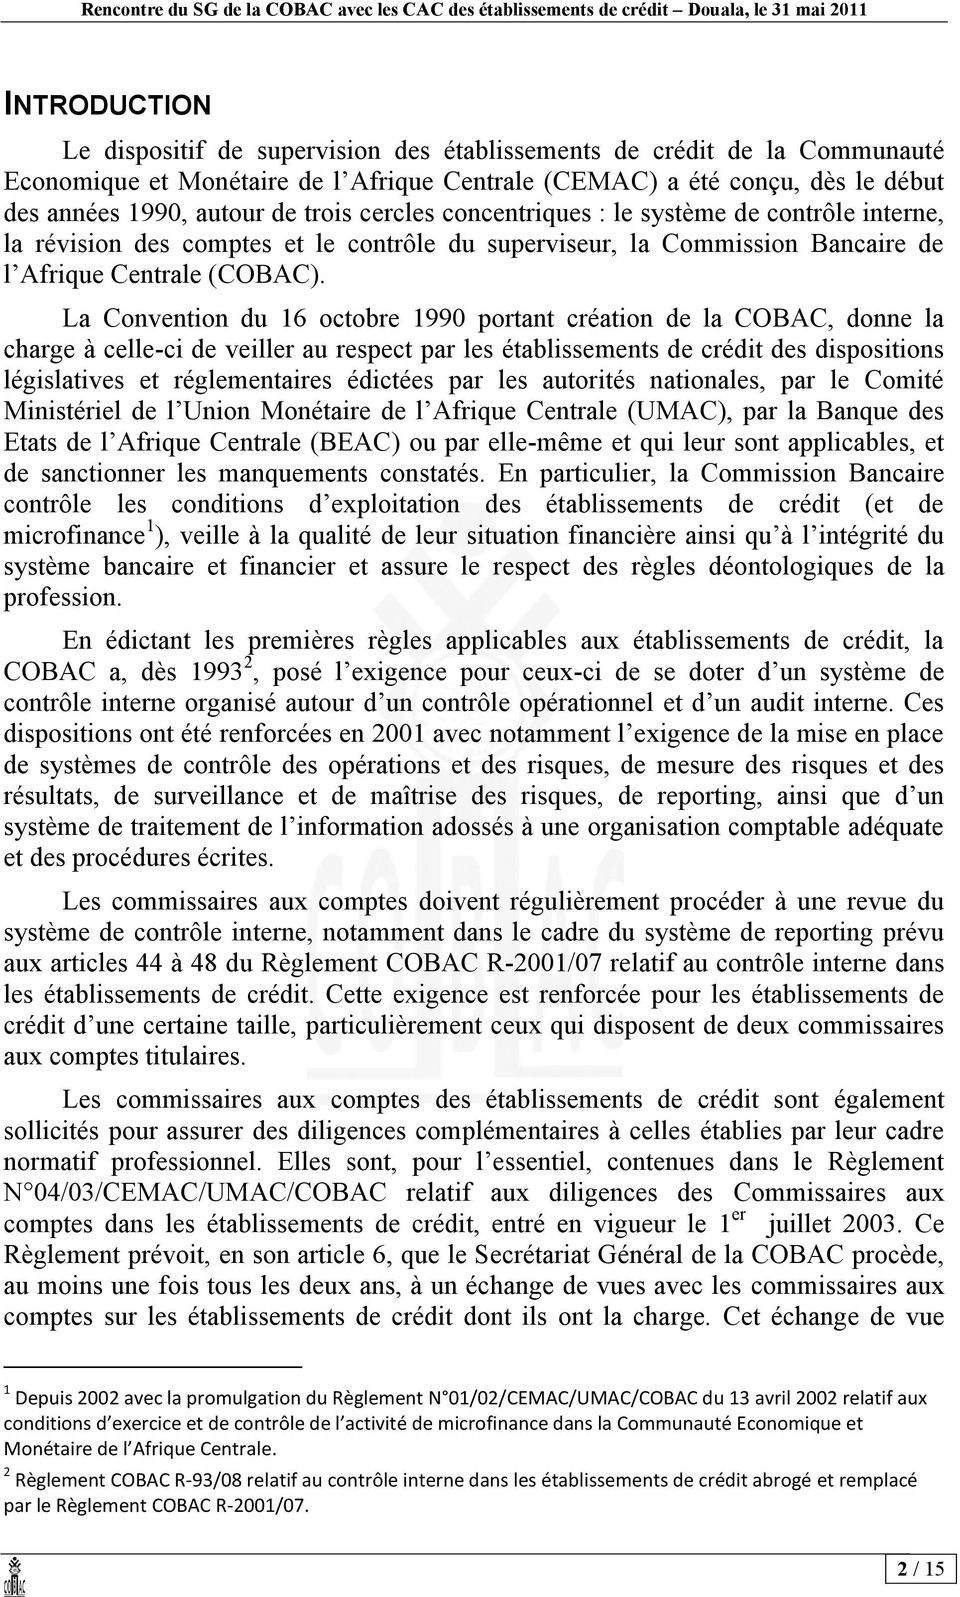 La Convention du 16 octobre 1990 portant création de la COBAC, donne la charge à celle-ci de veiller au respect par les établissements de crédit des dispositions législatives et réglementaires